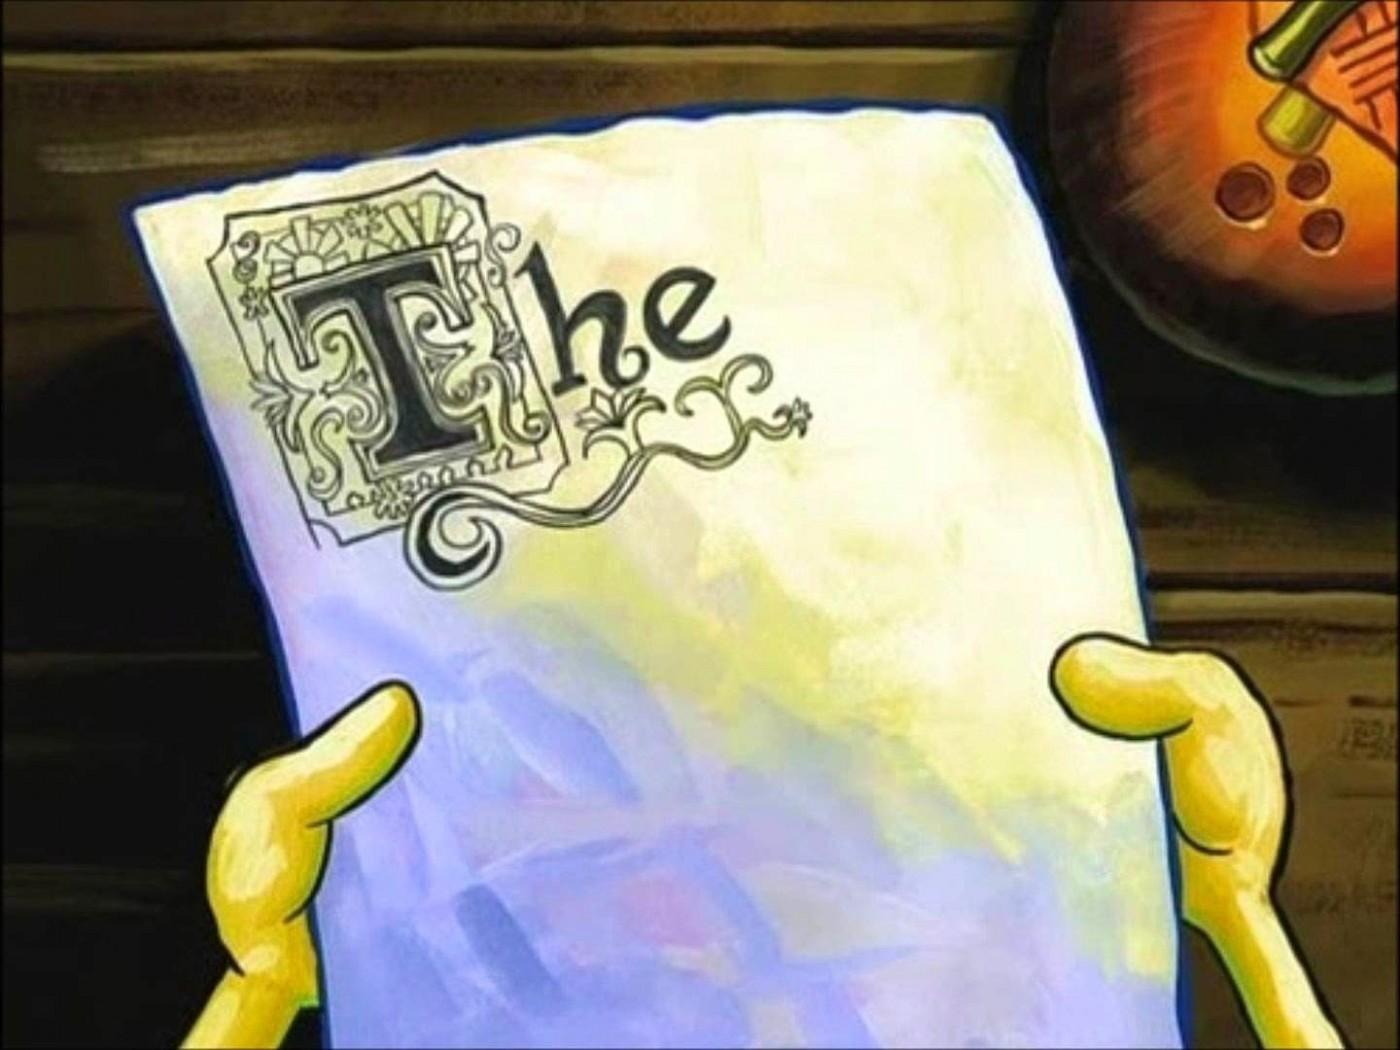 008 Essay Example Surprising Spongebob Writes An Full Episode Meme Generator Deleted Scene 1400